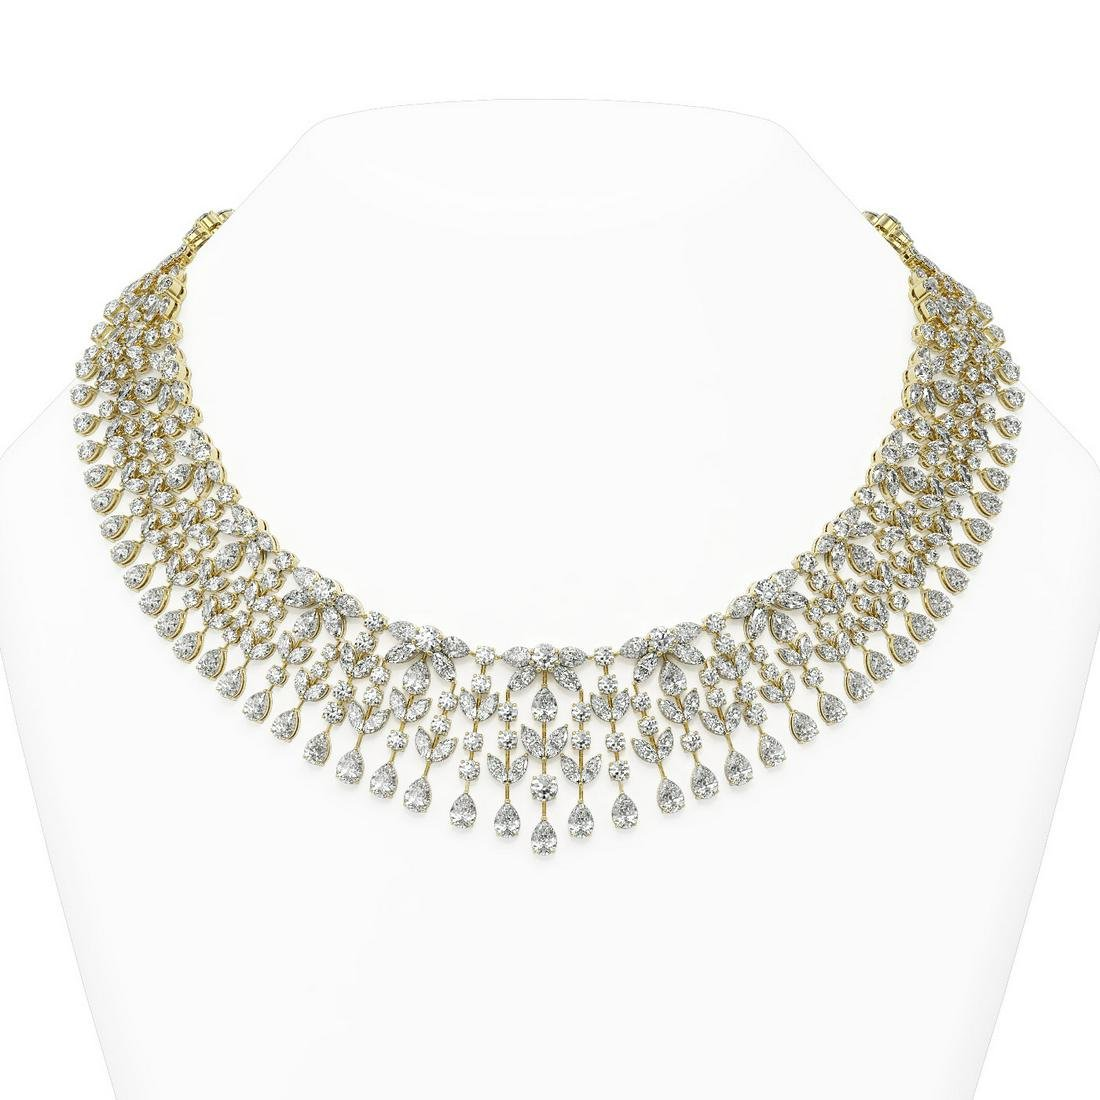 132 ctw Mixed Cut Diamond Designer Necklace 18K Yellow